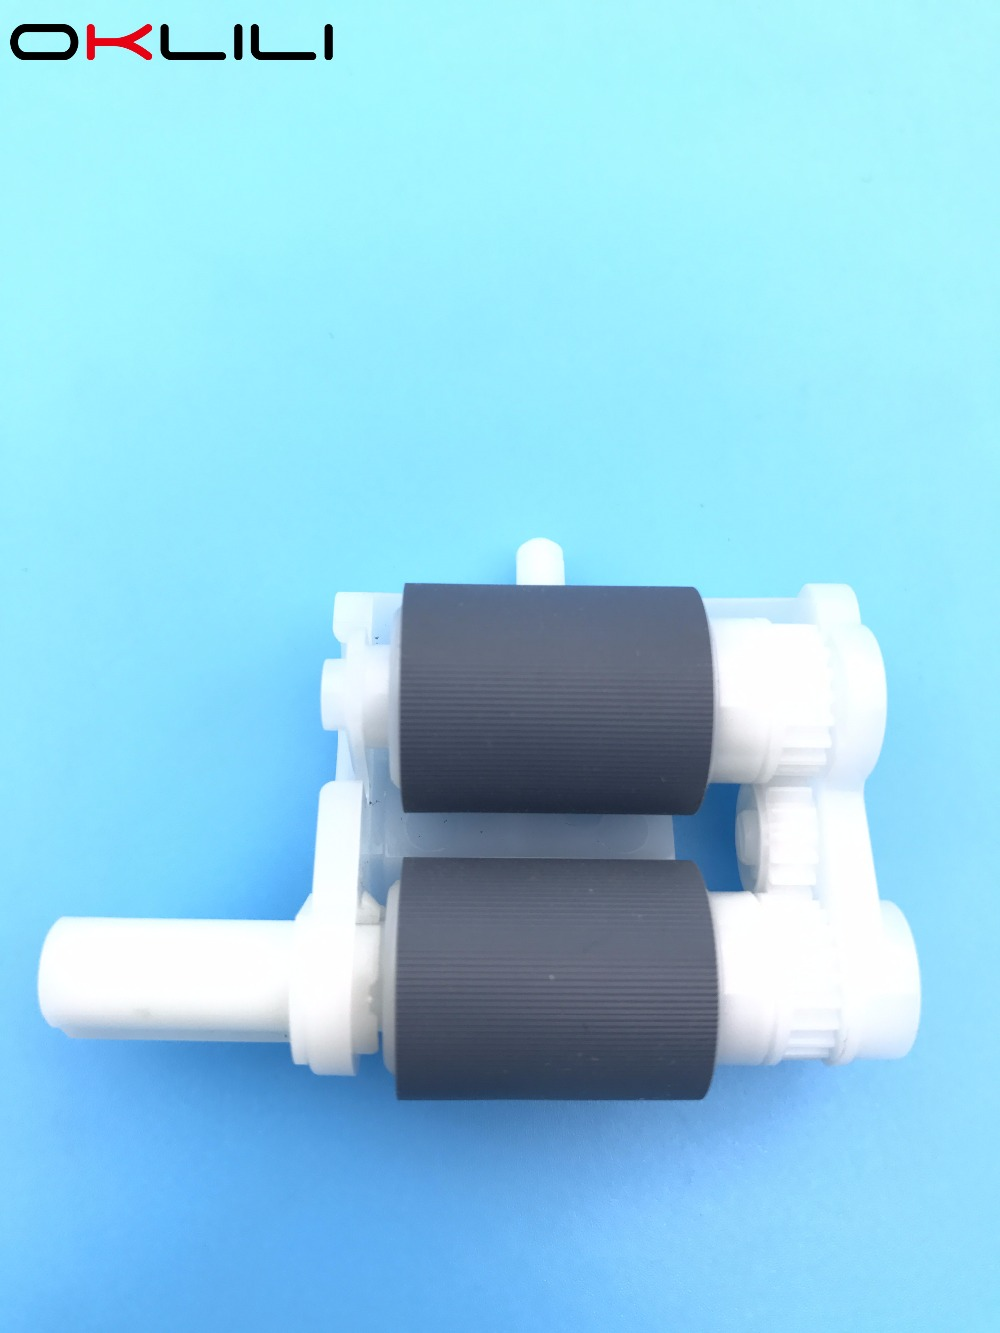 5PC X NEW LY2093001 Pickup Roller for Brother DCP 7055 7060 7065 7070 HL 2130 2132 2135 2220 2230 2240 2250 2270 2275 2280 cactus cs tn2275s black тонер картридж для brother hl 2240 2250 2270 mfc 7360 7460 7860 7060